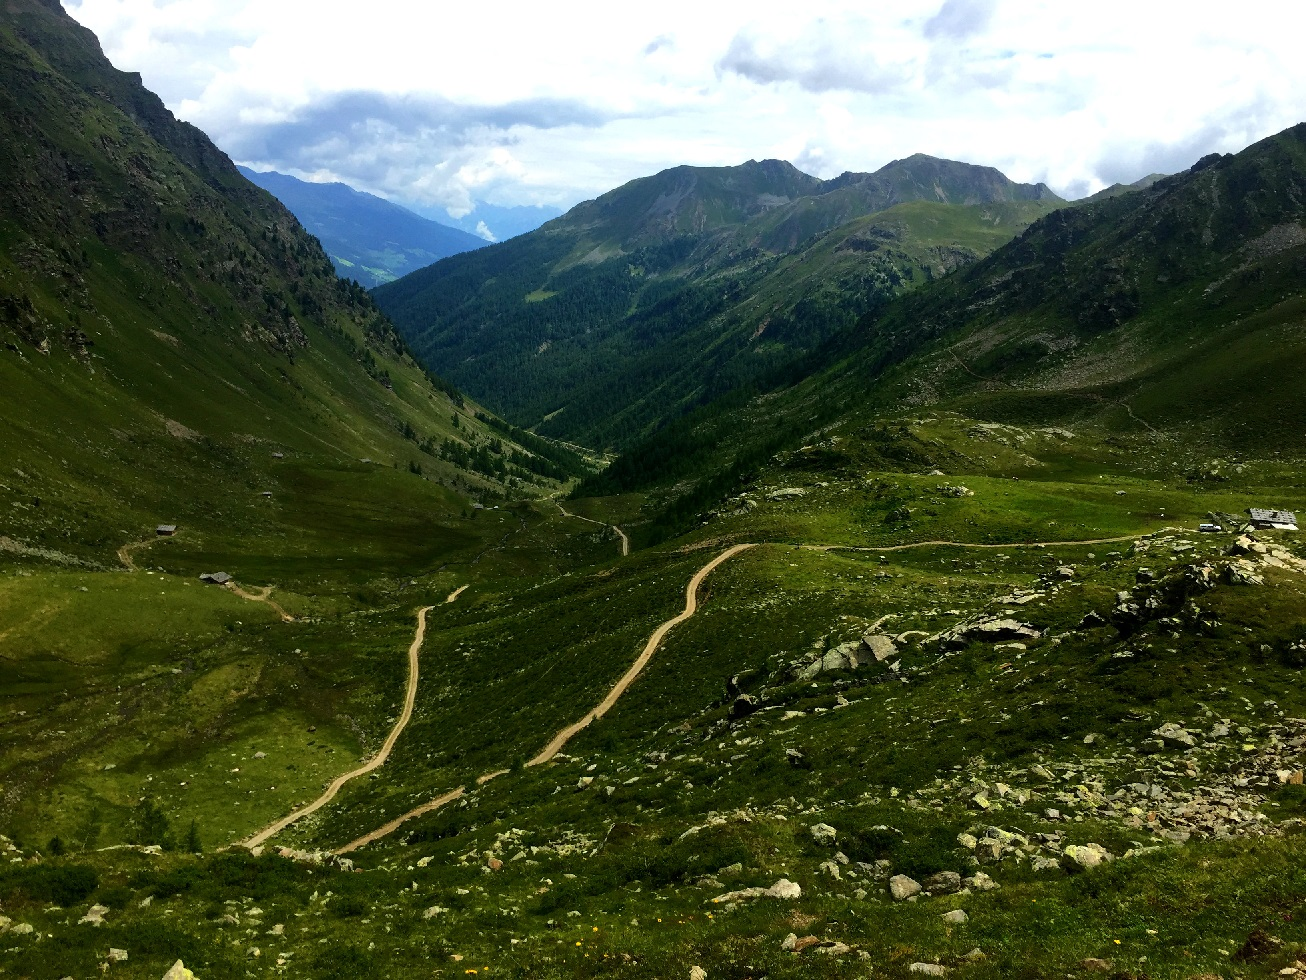 Transalp Day 6 - Alps Trip